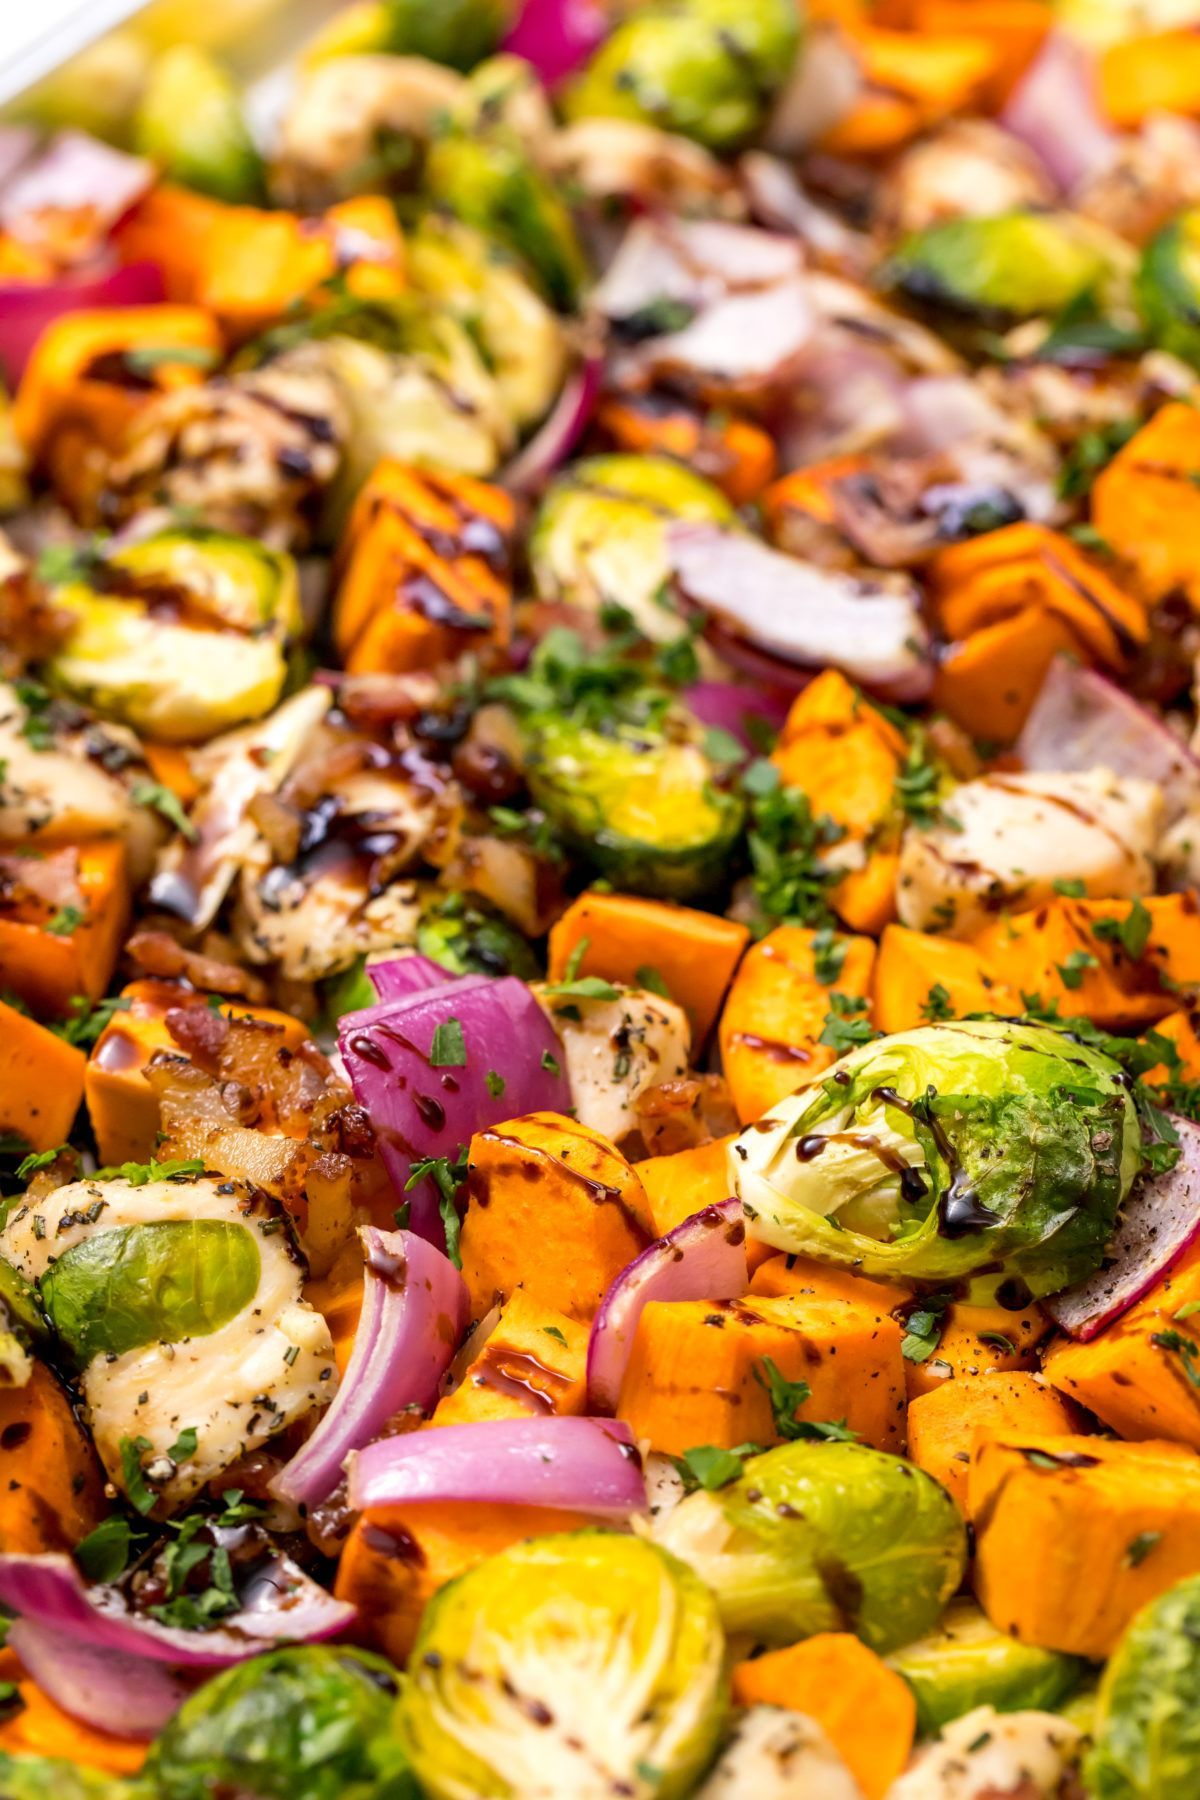 Sheet-pan chicken, sweet potatoes and Brussels sprouts with bacon and balsamic glaze -